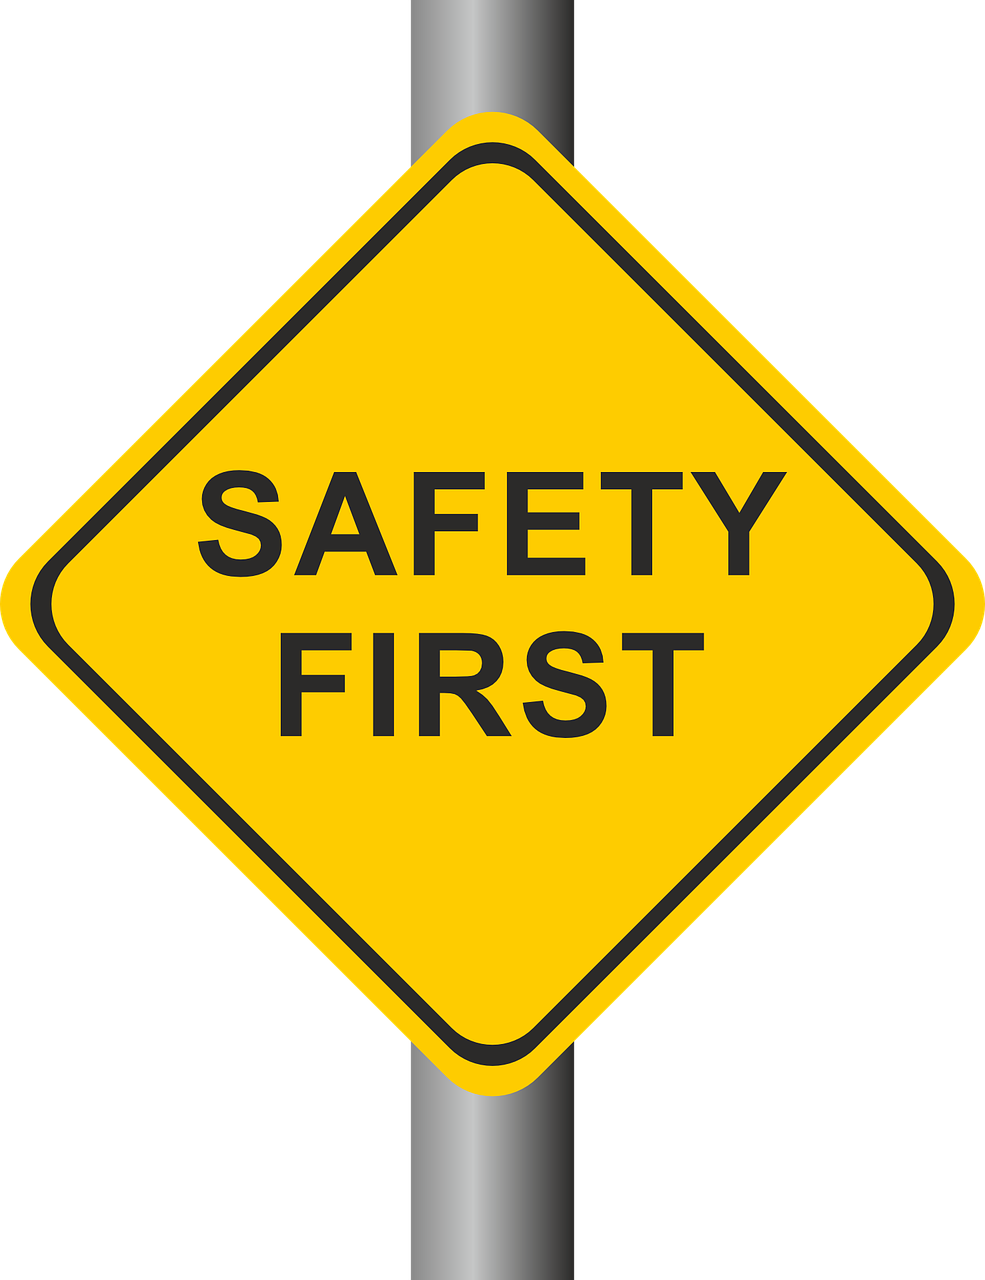 Jobs clipart workplace. Video resource for safety